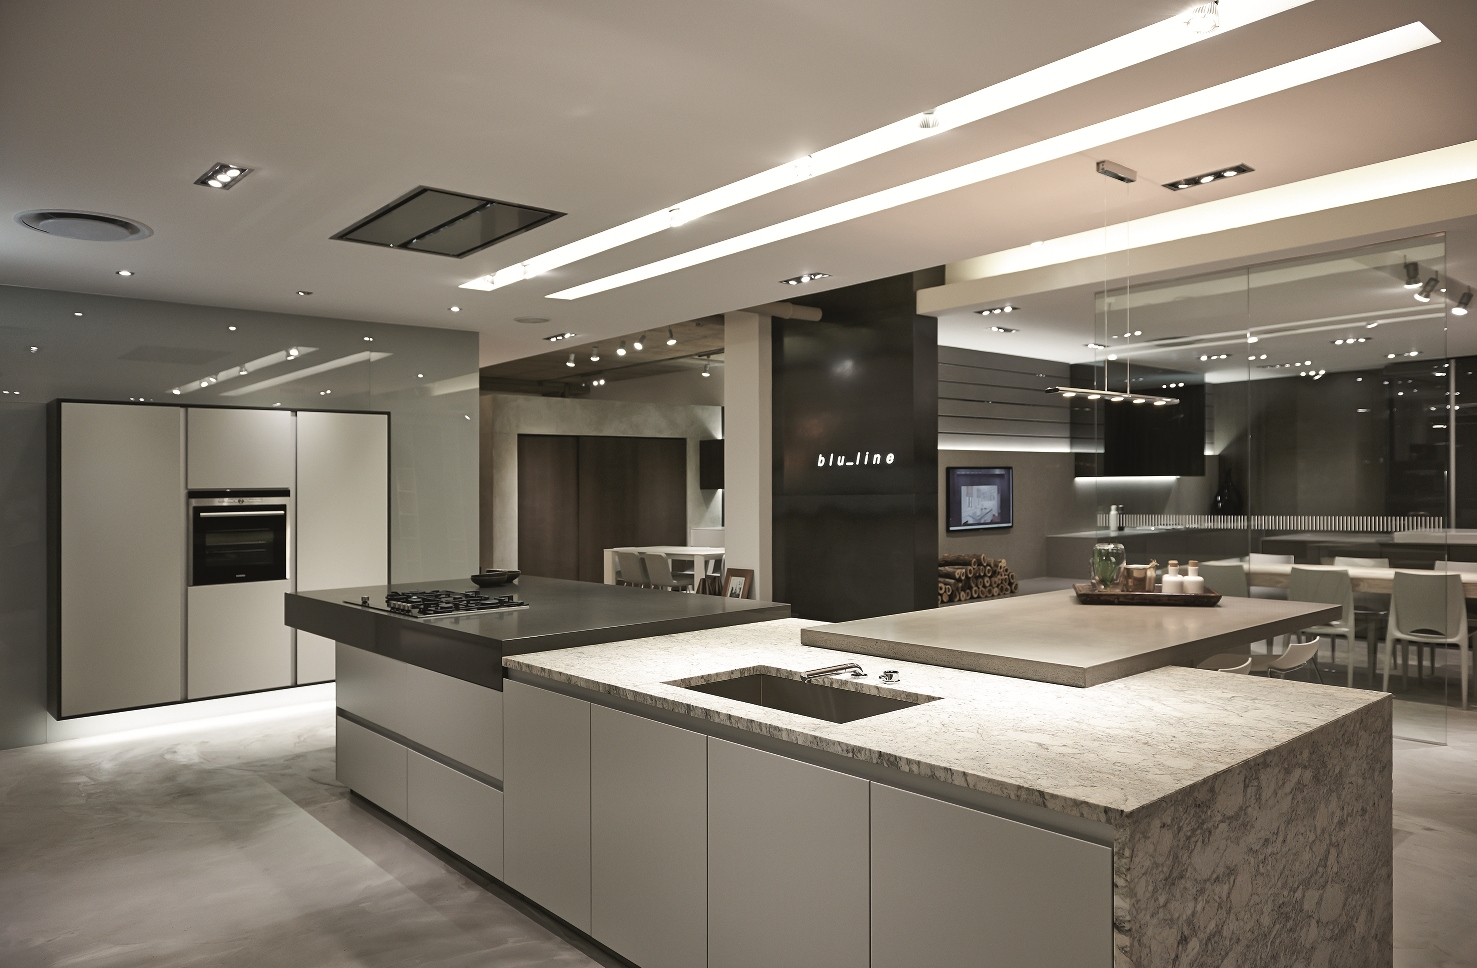 Kitchen Showroom Design Ideas With Images